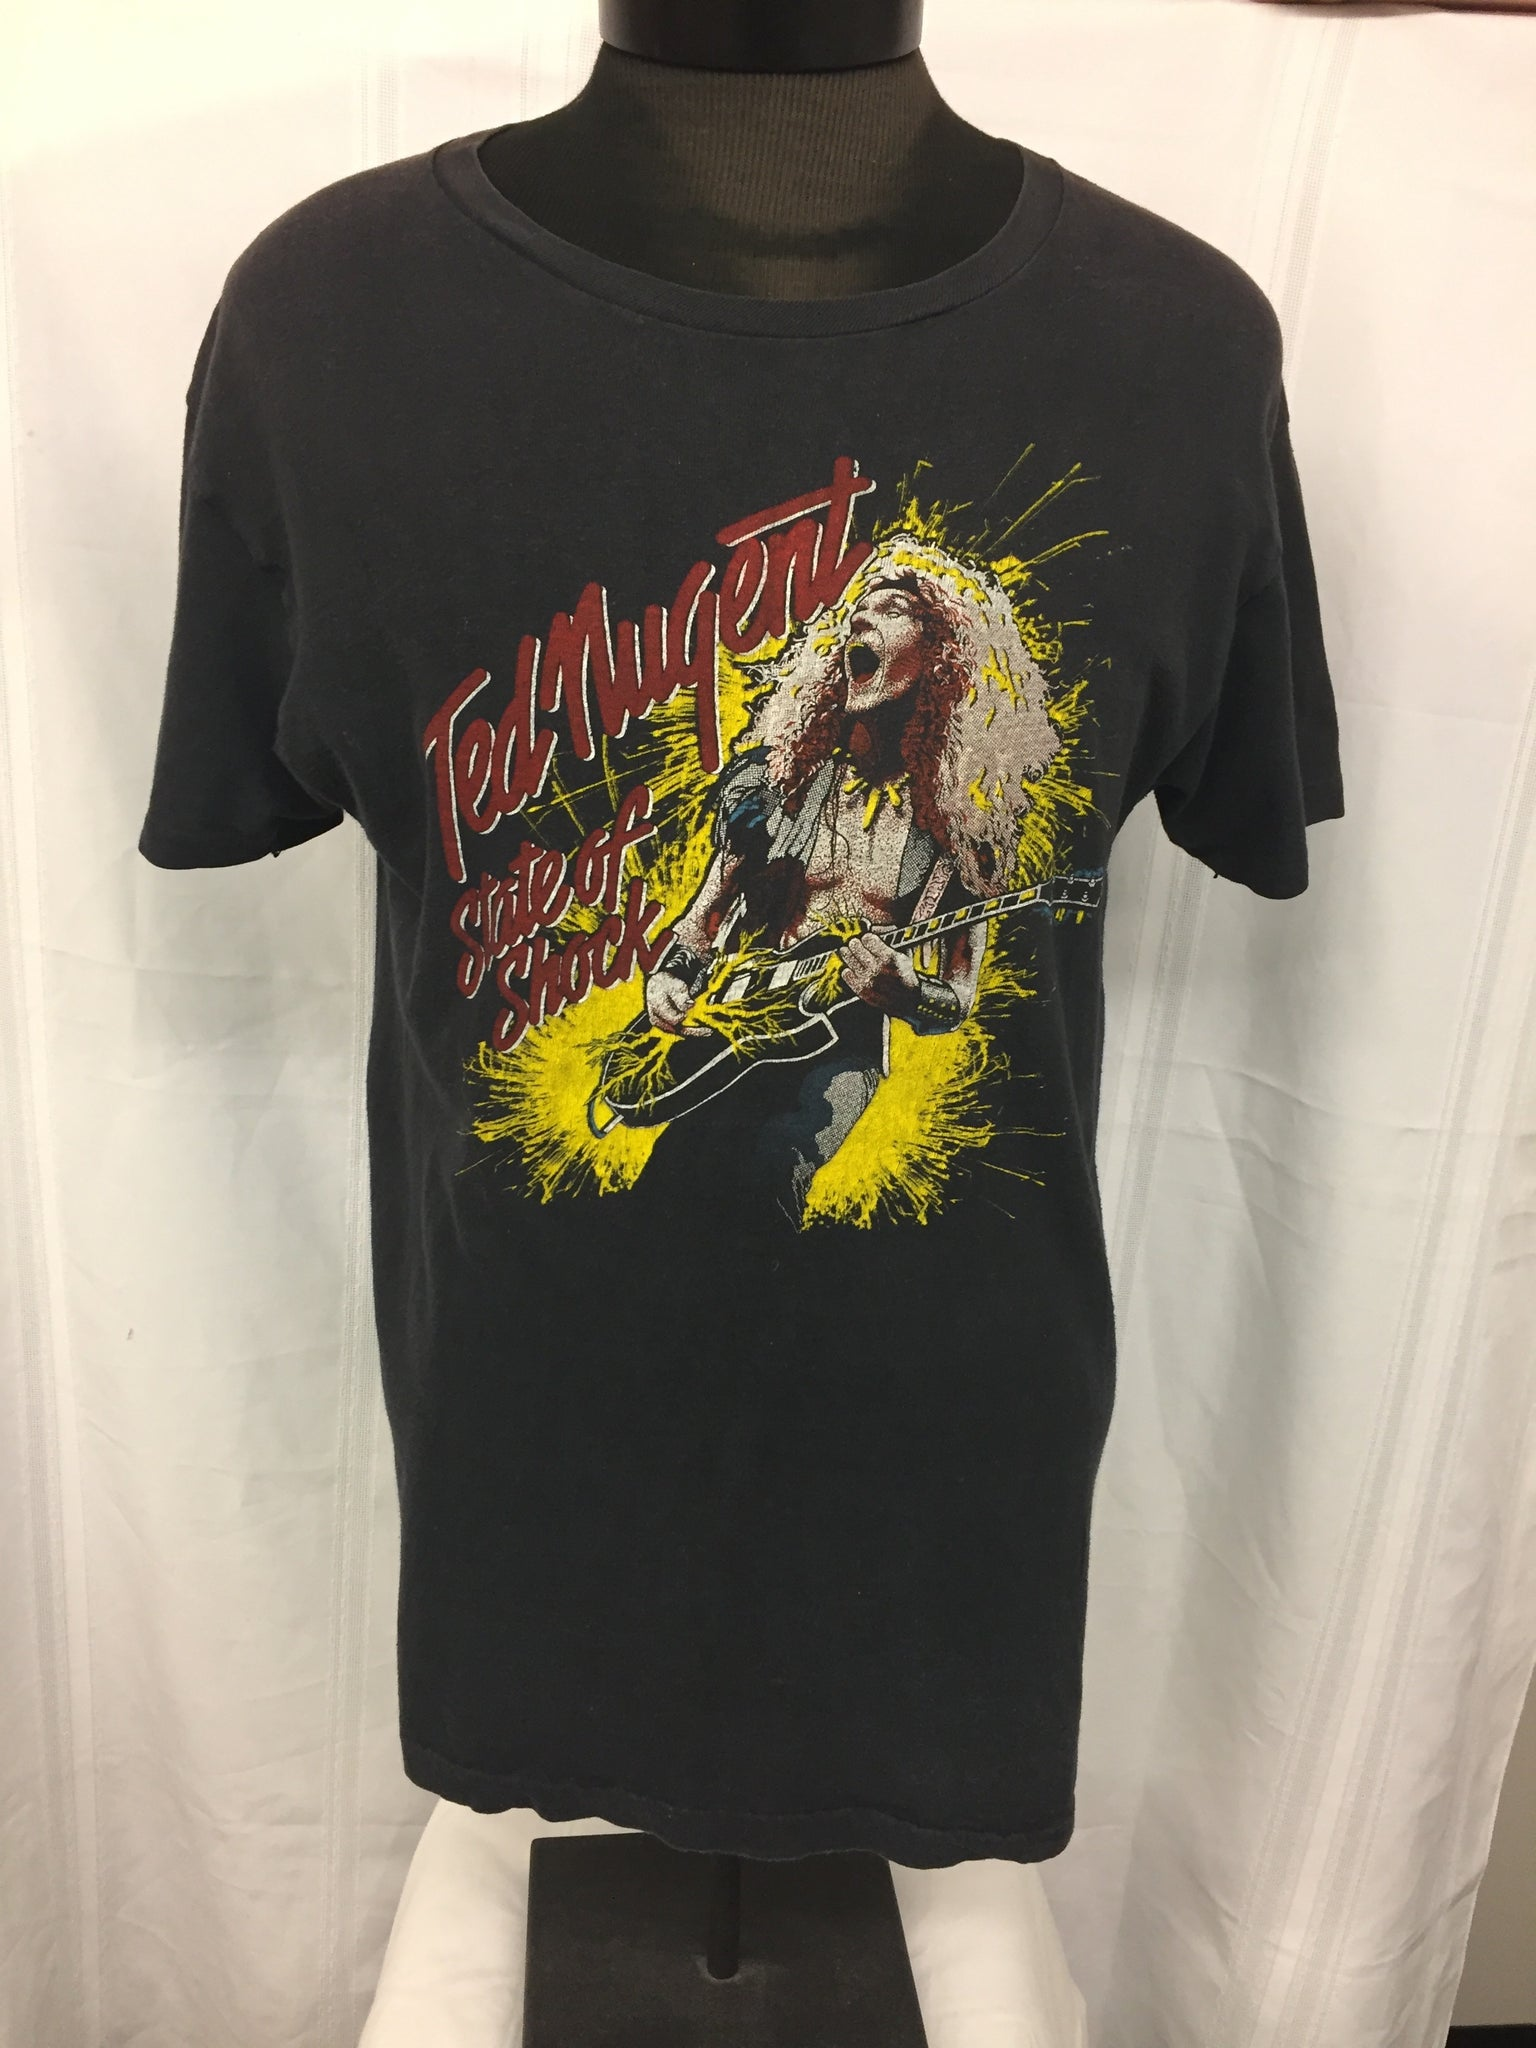 Vintage 1979 Ted Nugent State Of Shock Concert Shirt Live Cobo Hall Detroit Rock Music